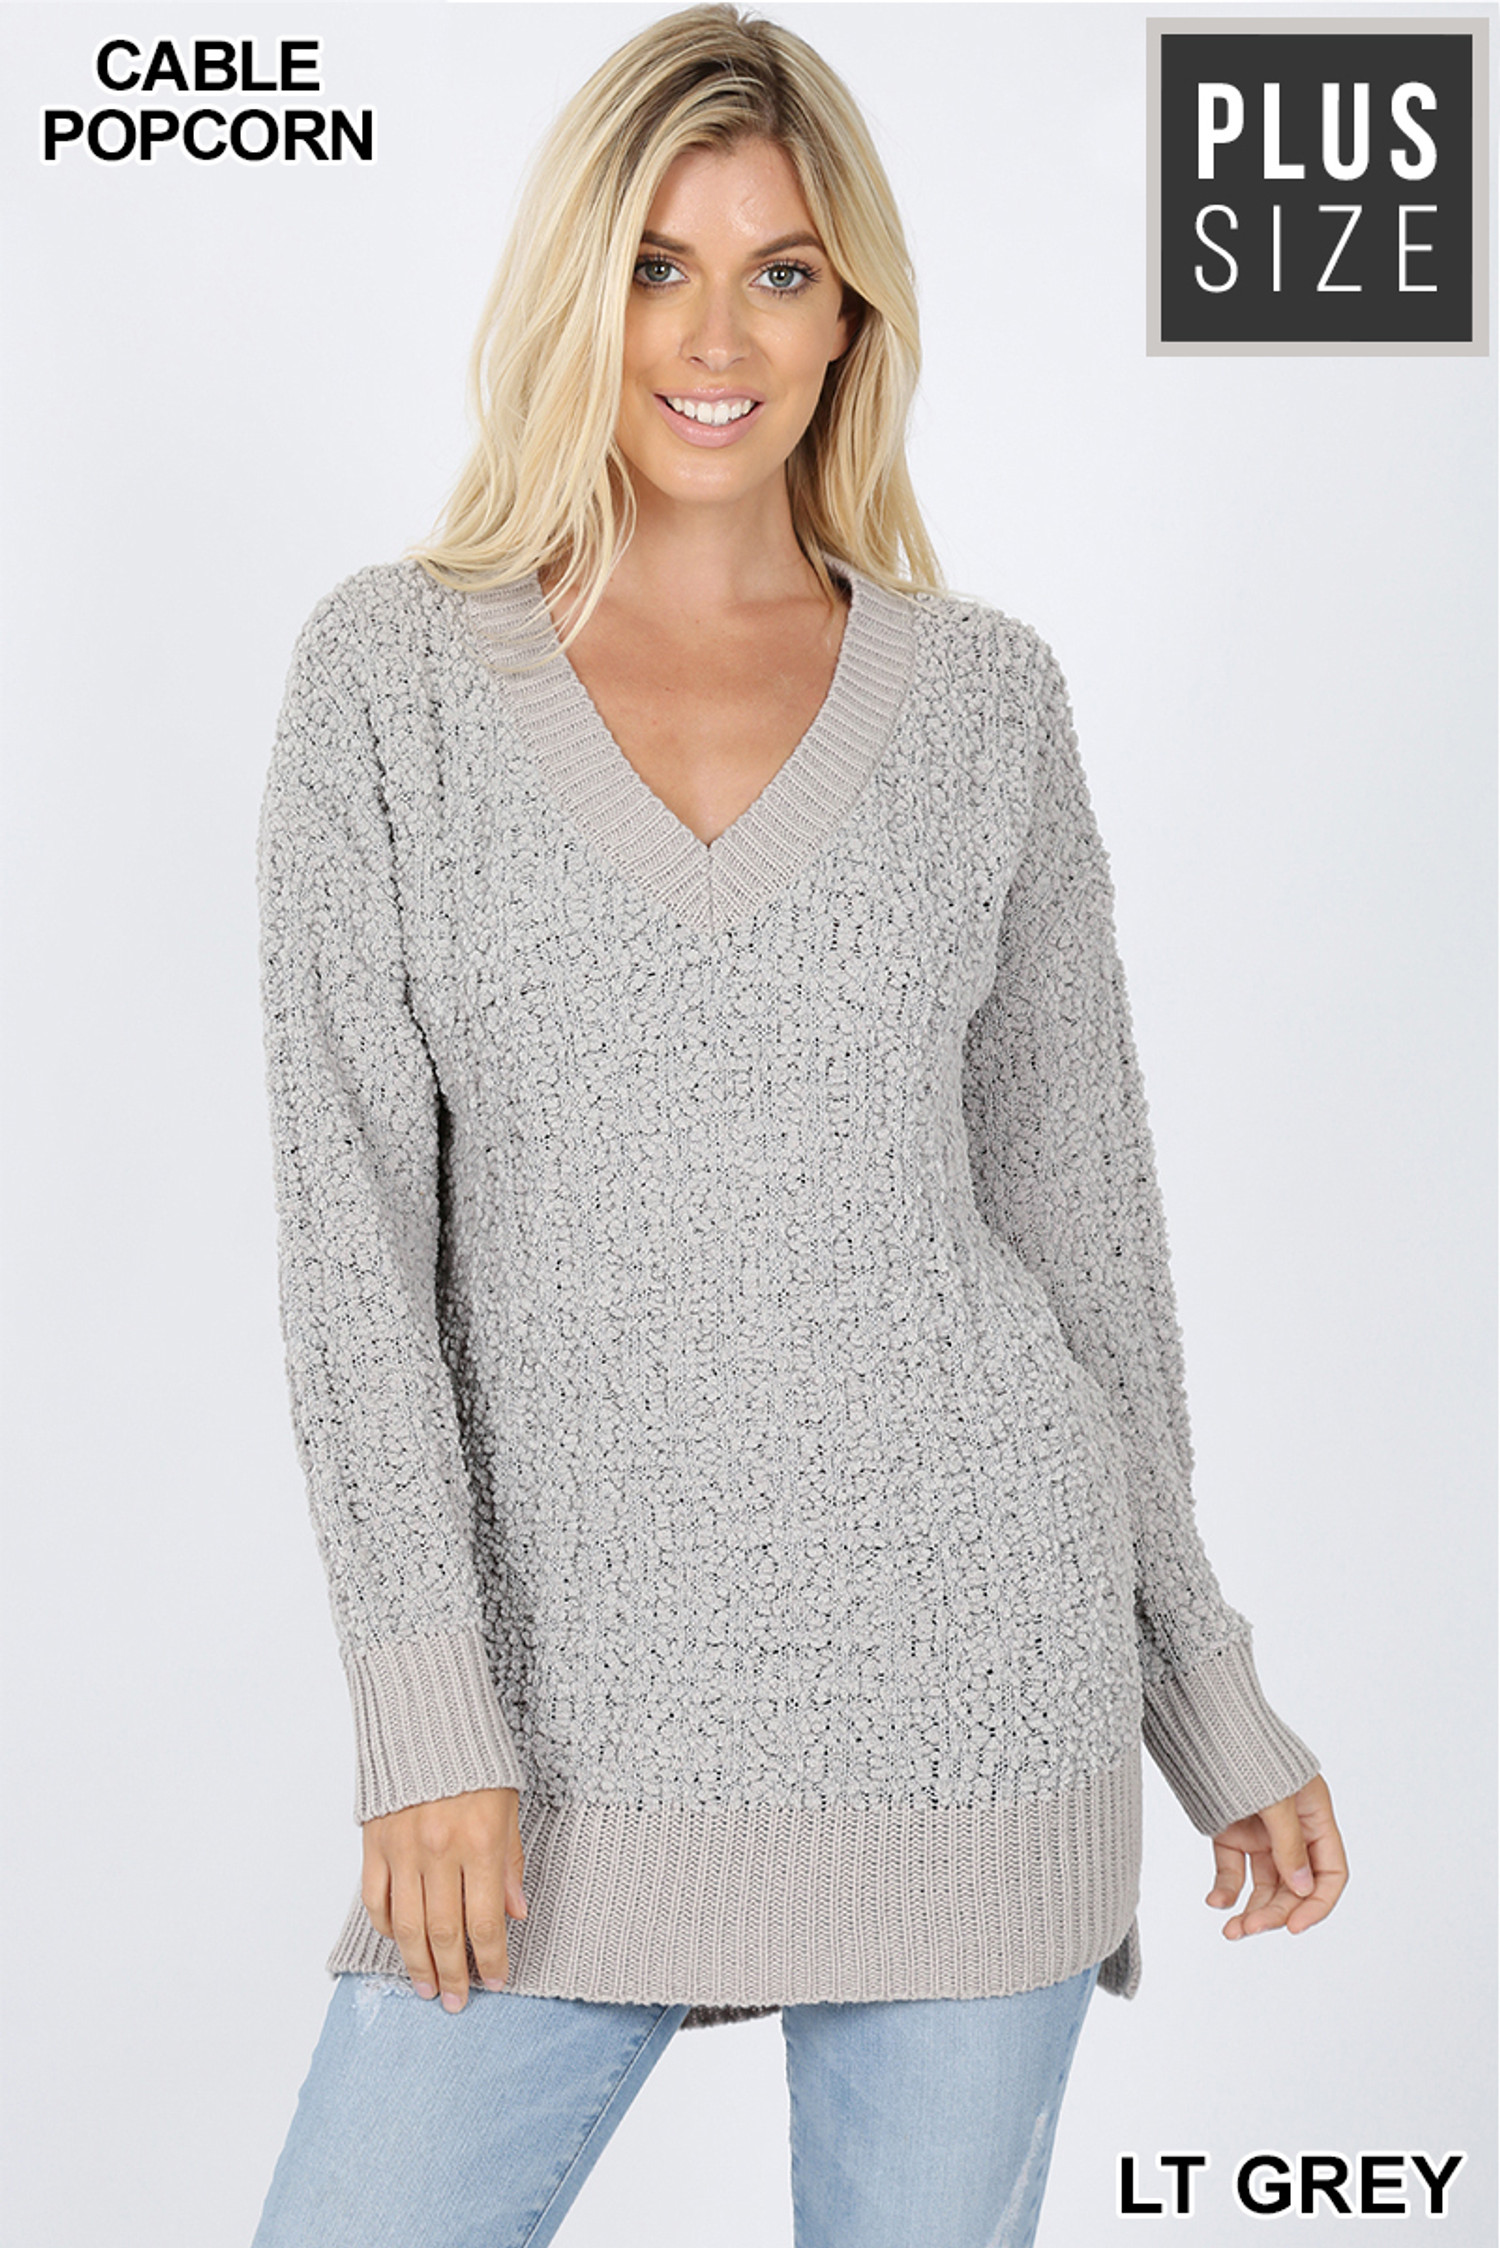 Front image of Light Grey Cable Knit Popcorn V-Neck Hi-Low Plus Size Sweater